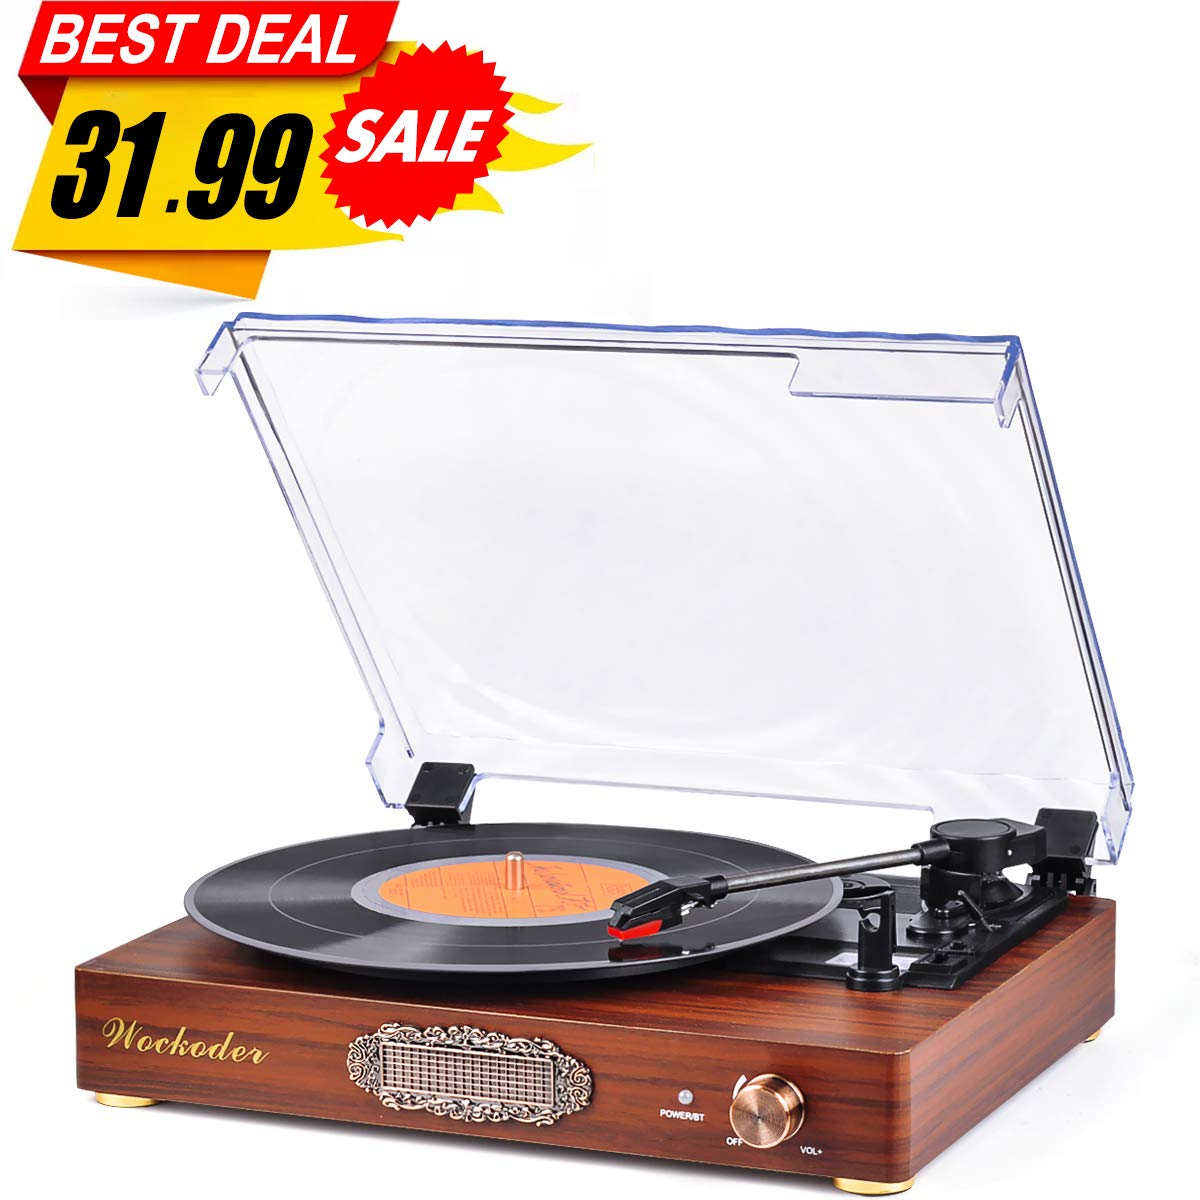 Wockoder Turntable Vinyl Record Player turntable vinyl records 3 Speed Turntable Player Classic turntable player 33/45/78rpm selectable speed plays 7'' 10'' & 12'' records Free Audio cable included